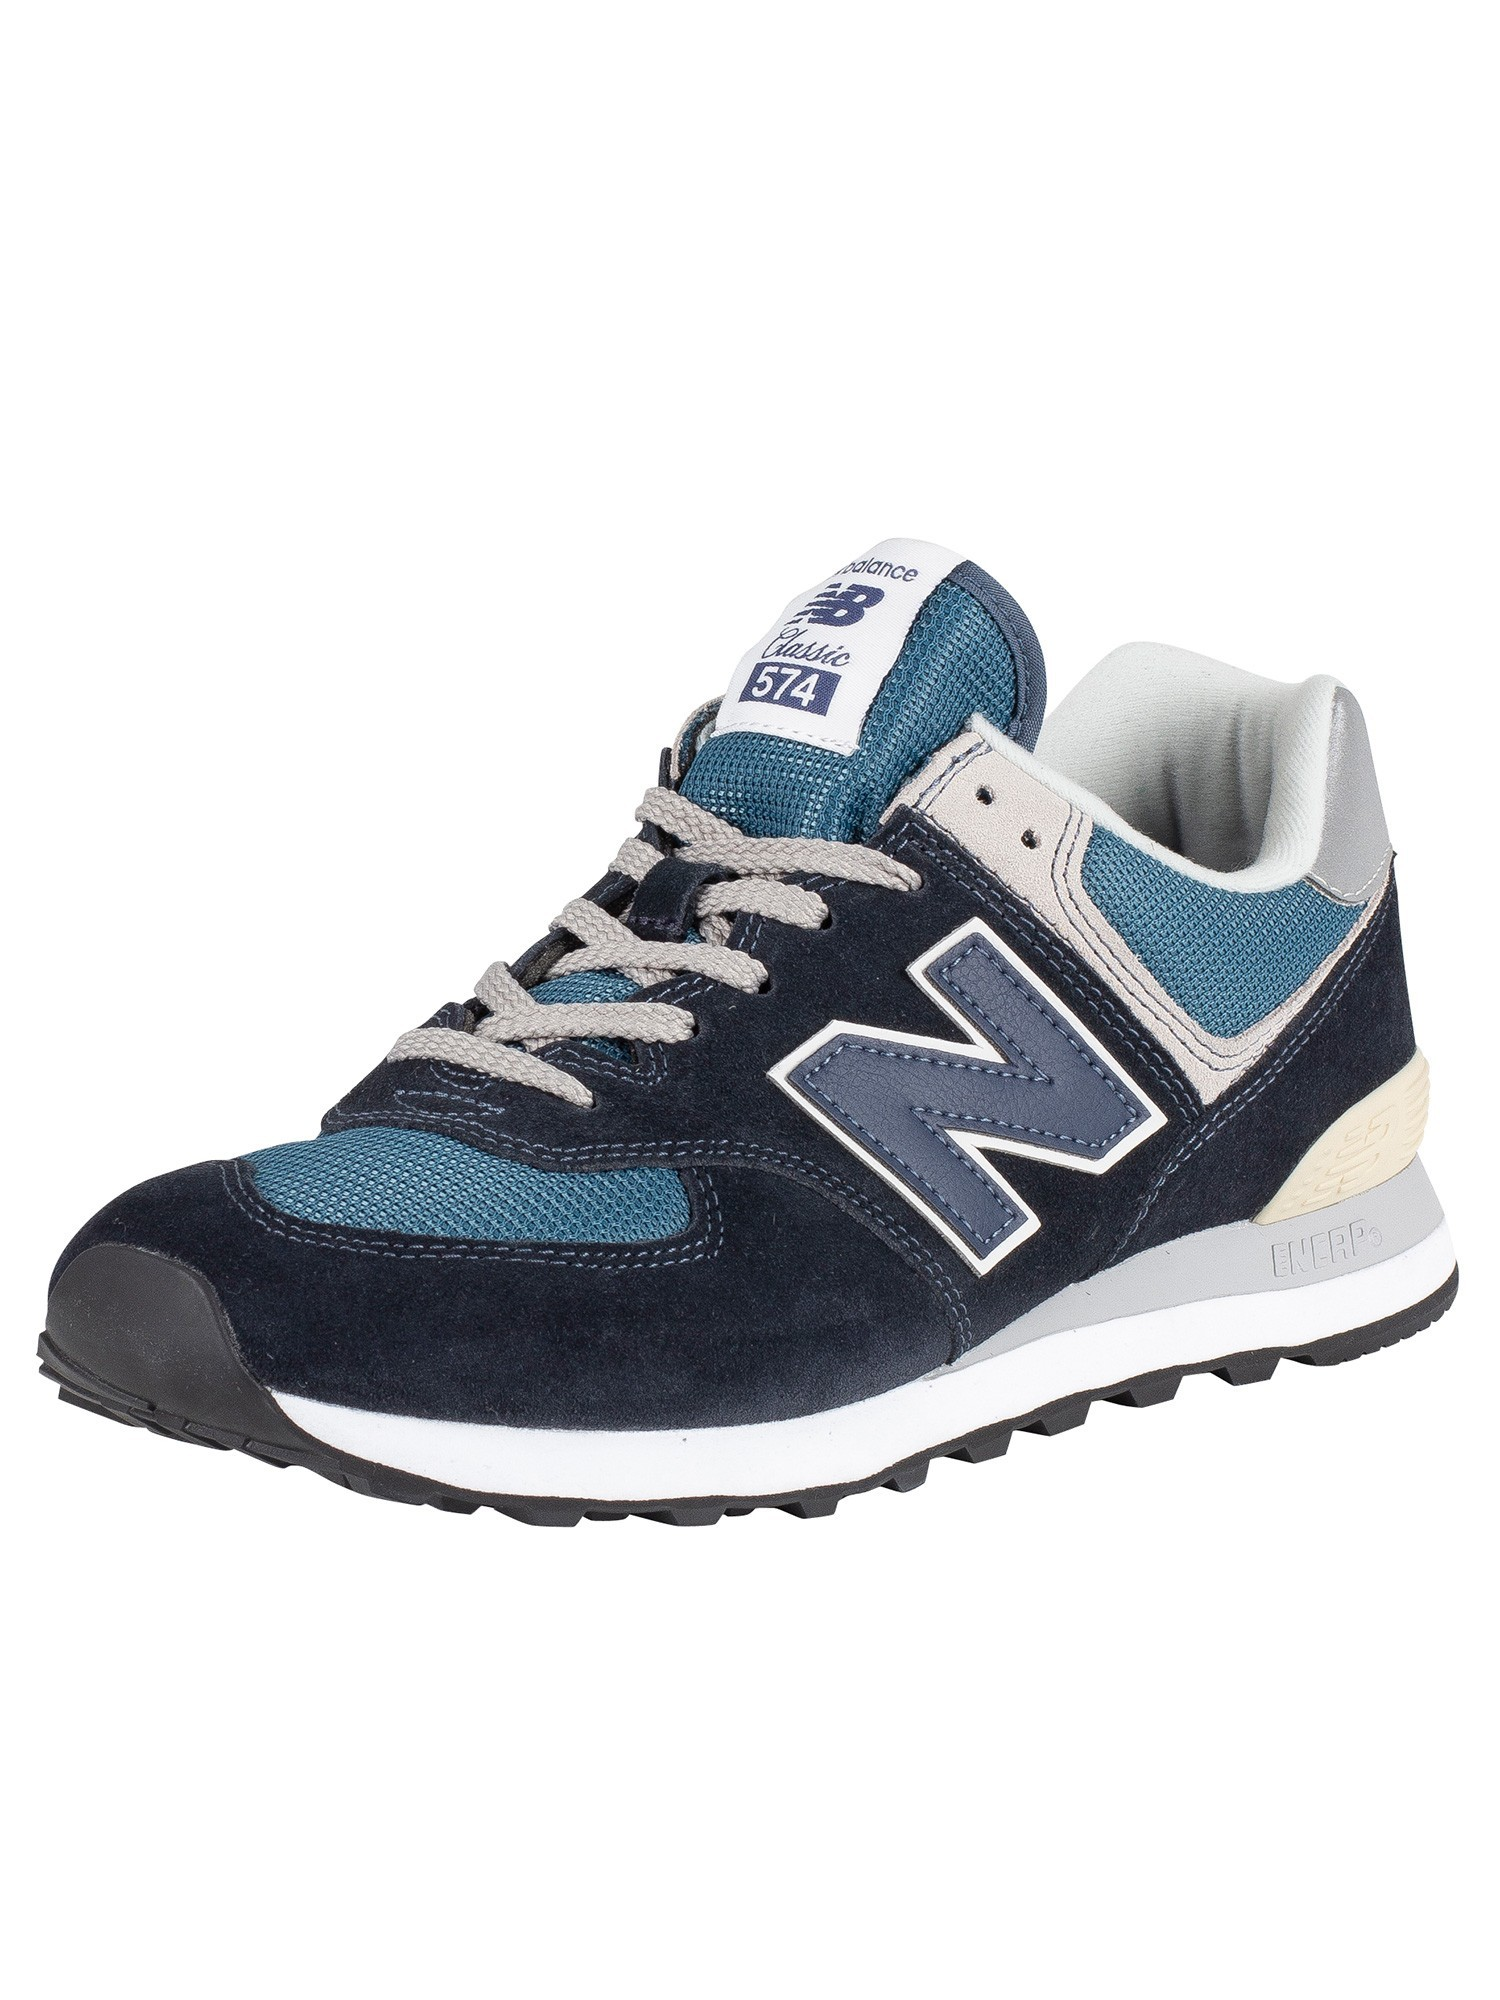 official photos f6b3d 17bde New Balance 574 Suede Trainers - Black/Blue